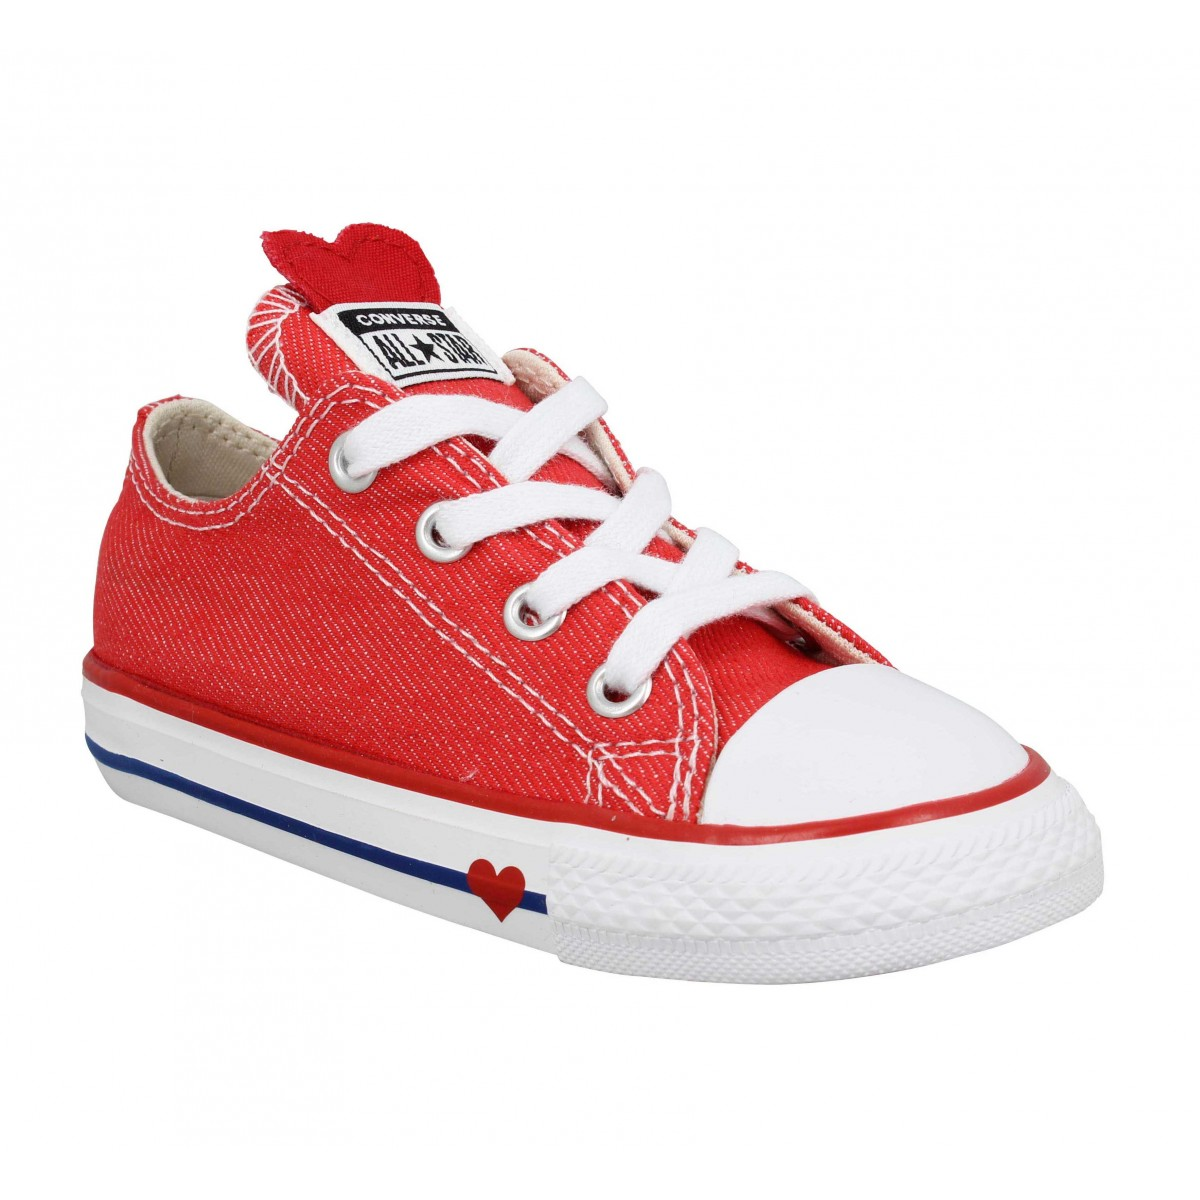 Baskets CONVERSE Chuck Taylor All Star toile Enfant Red